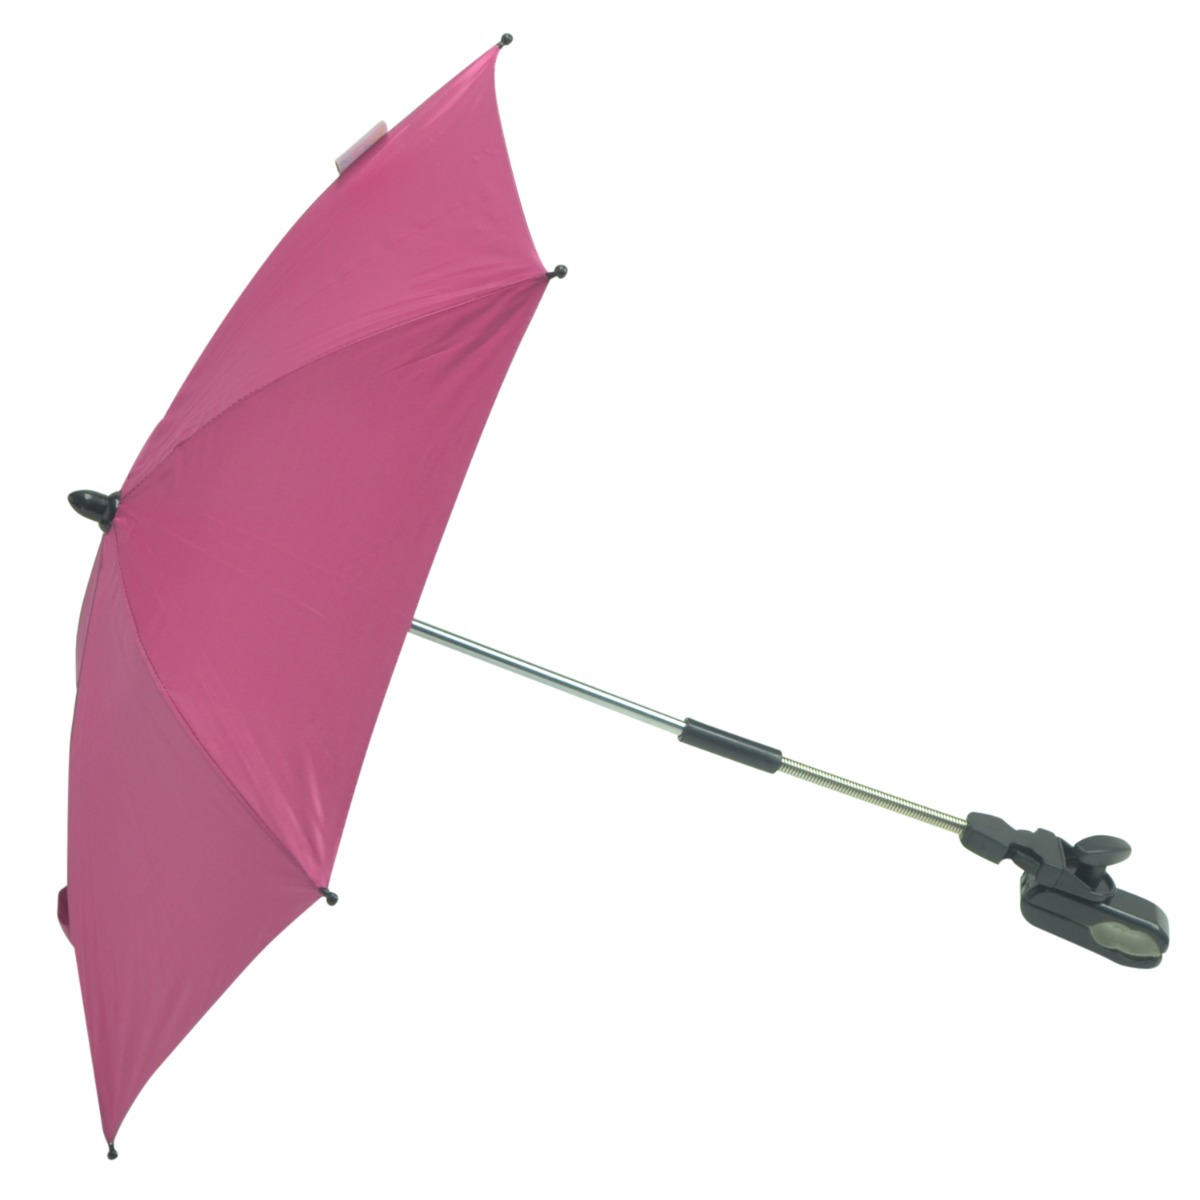 Baby-Parasol-Universal-Sun-Umbrella-Shade-Maker-Canopy-For-Pushchair-Pram-Buggy thumbnail 42